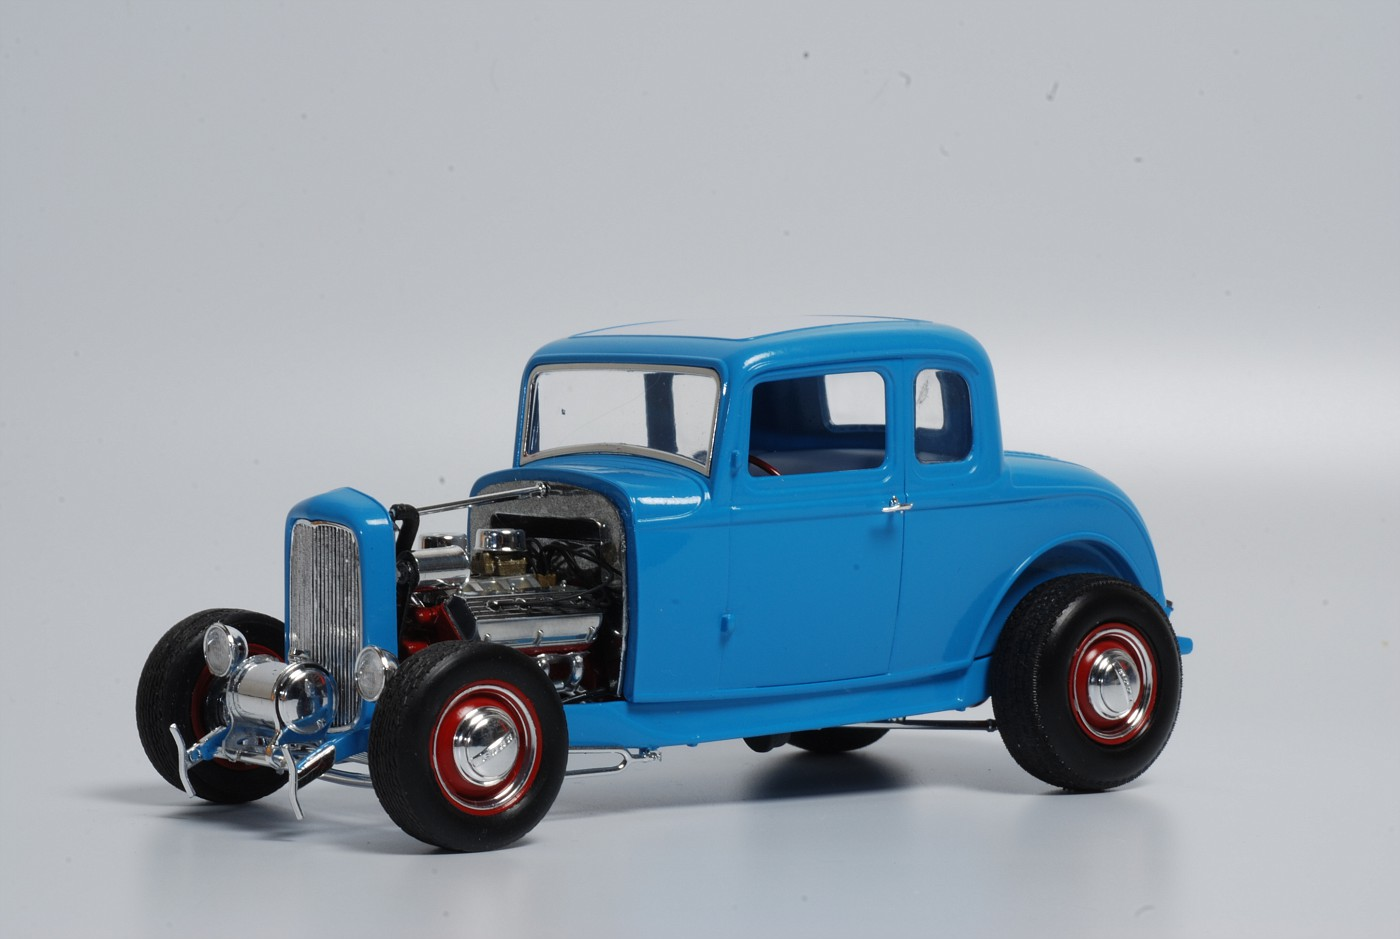 Finally finished the preview build of the Revell-Monogram u002732 Ford Five Window Coupe kit. During the final ssembly added a few personal touches. & Finally finished! Revell u002732 Ford Five Window Coupe Kit Build ... markmcfarlin.com